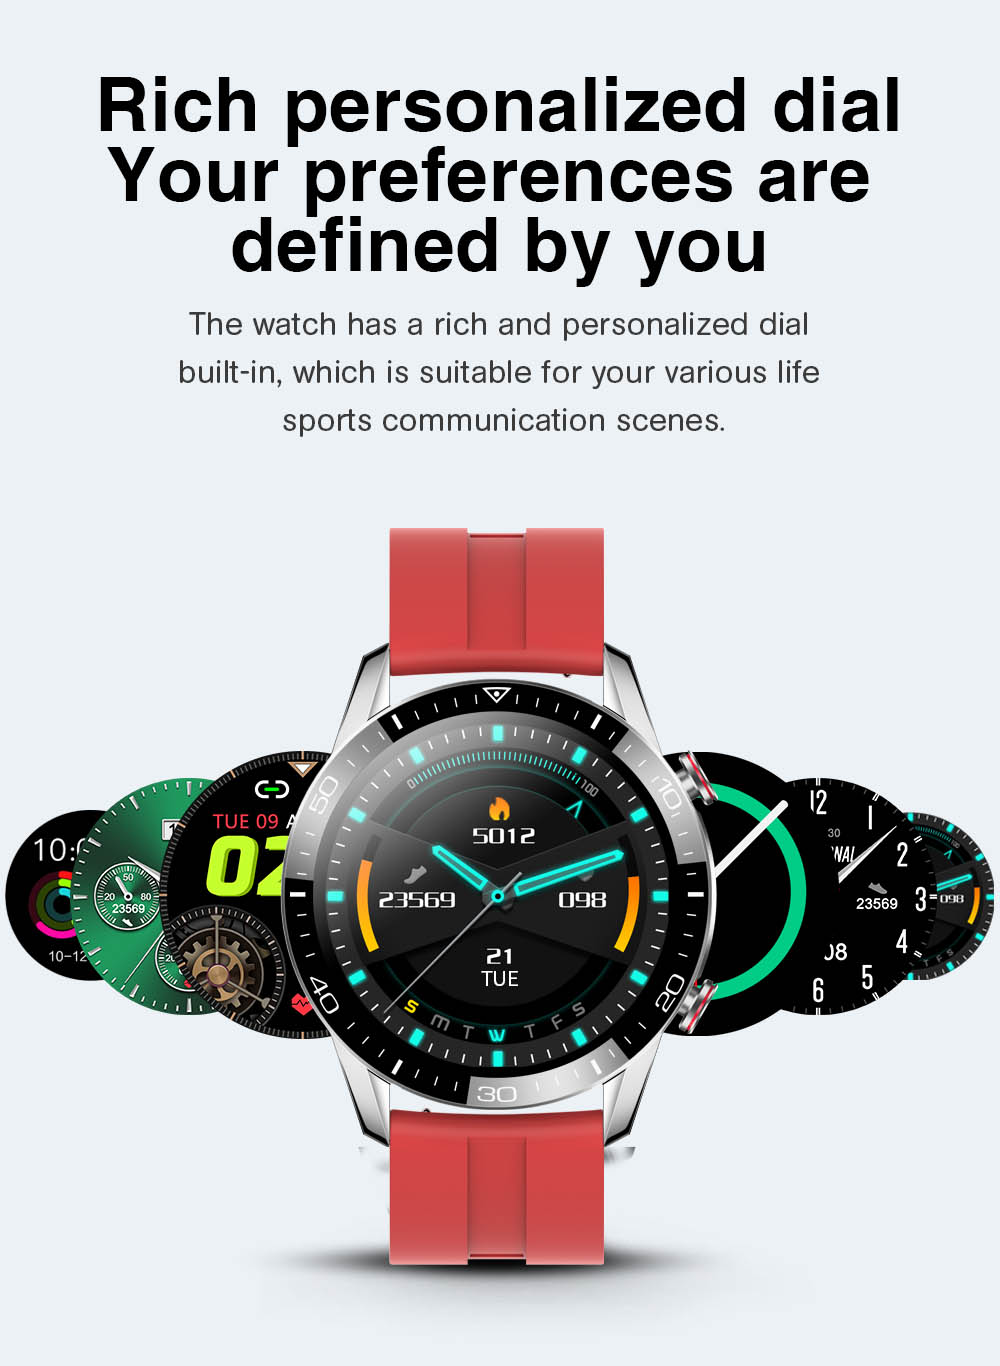 H94bd9a74389e4b358401b2bc9627f58a1 TK2-8 Smart Watch For Men Bluetooth Call IP68 Waterproof Blood Pressure Heart Rate Monitor New SmartWatch Sports Fitness Tracker